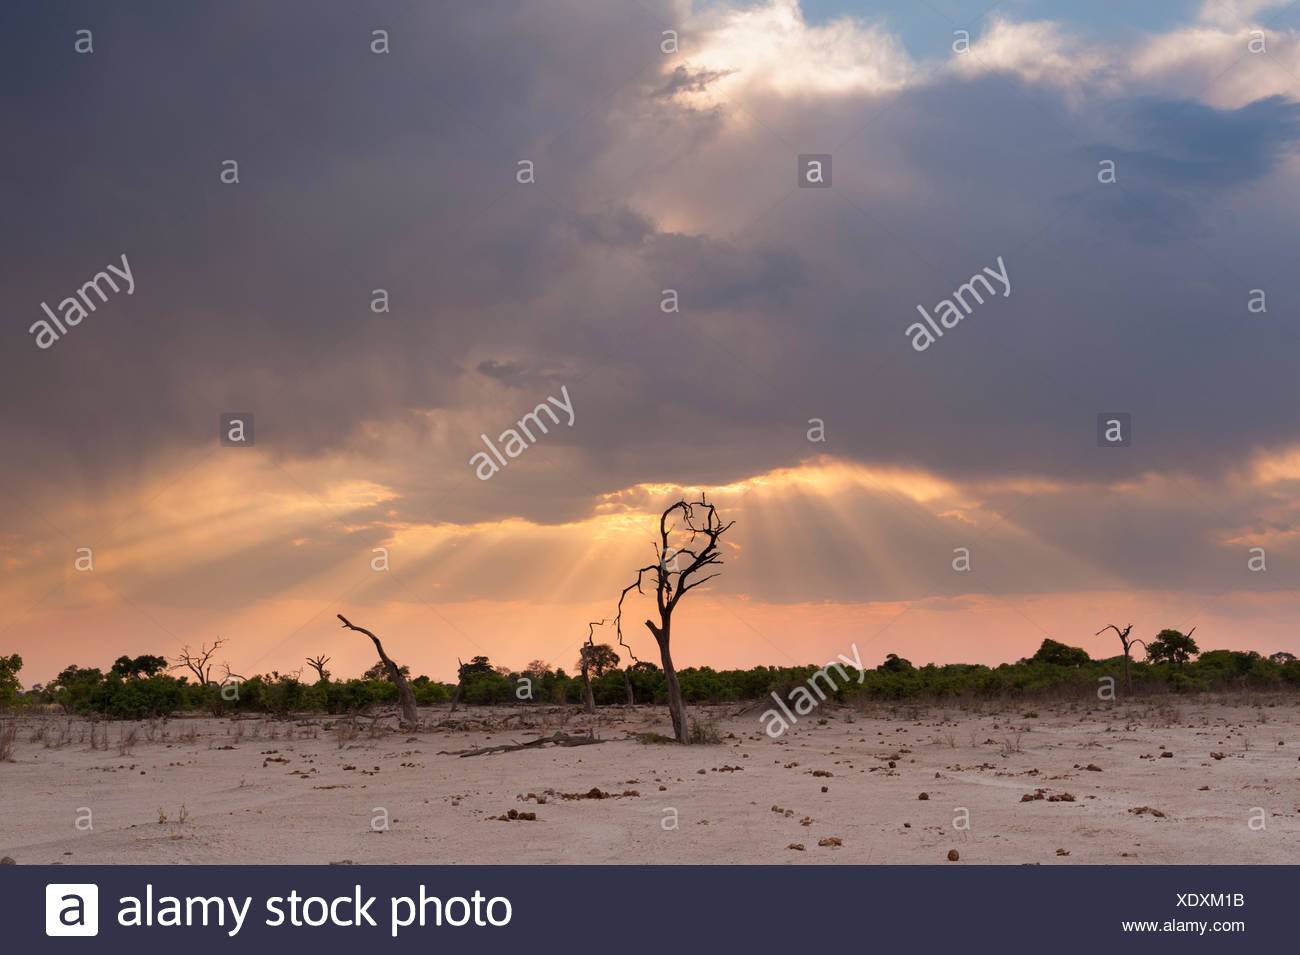 Savuti Marsh at sunset. Stock Photo